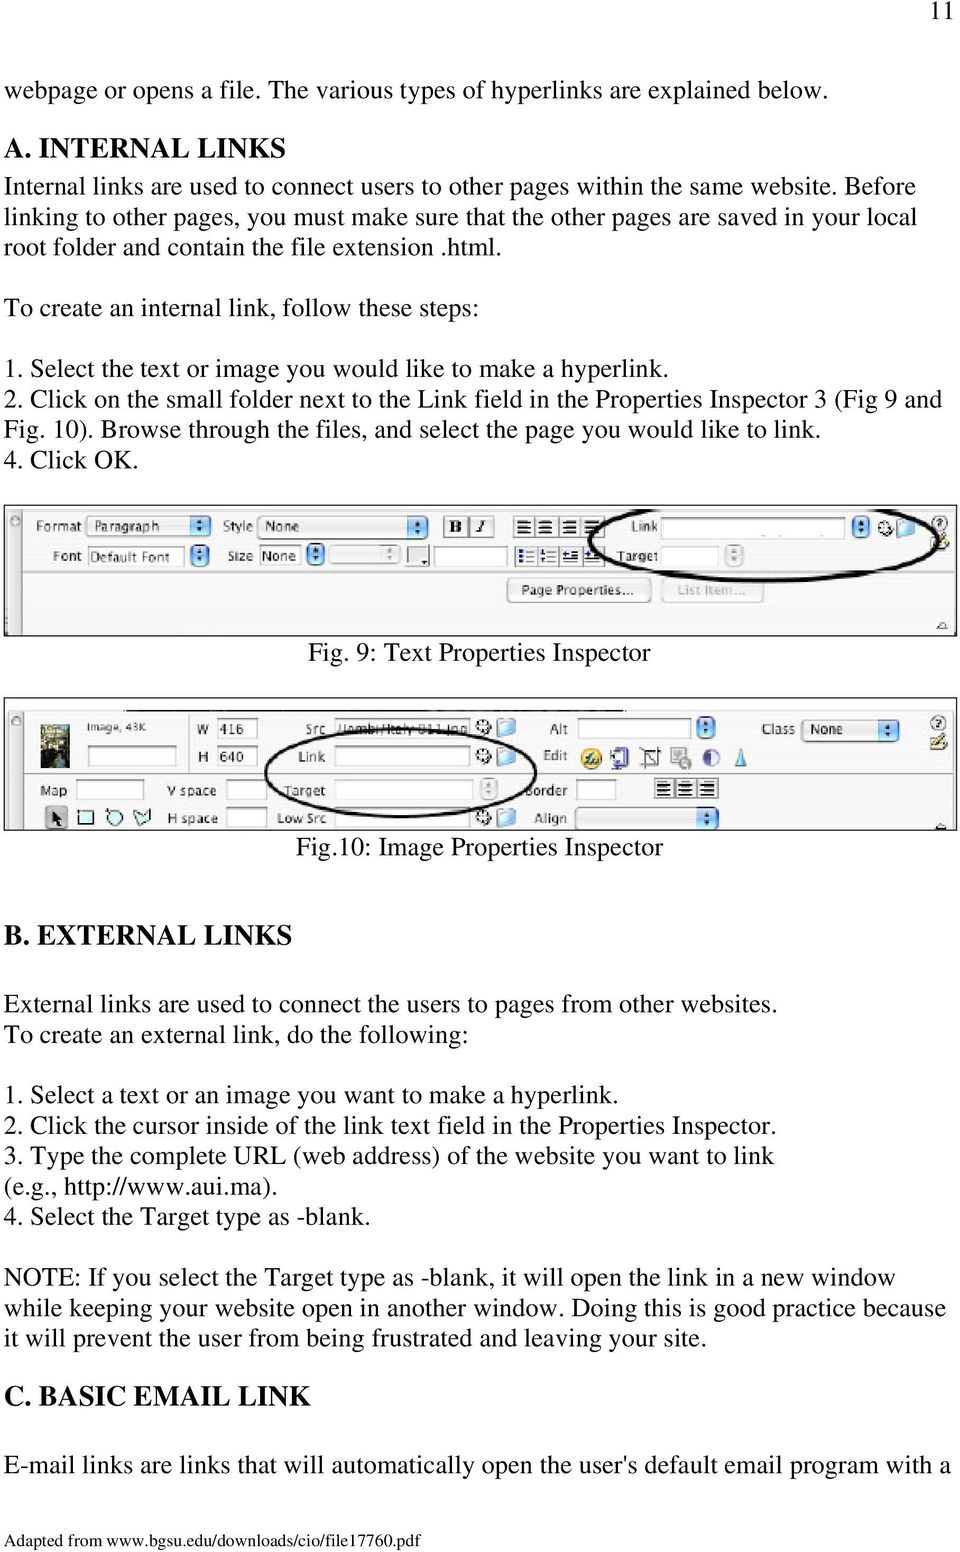 Select the text or image you would like to make a hyperlink. 2. Click on the small folder next to the Link field in the Properties Inspector 3 (Fig 9 and Fig. 10).